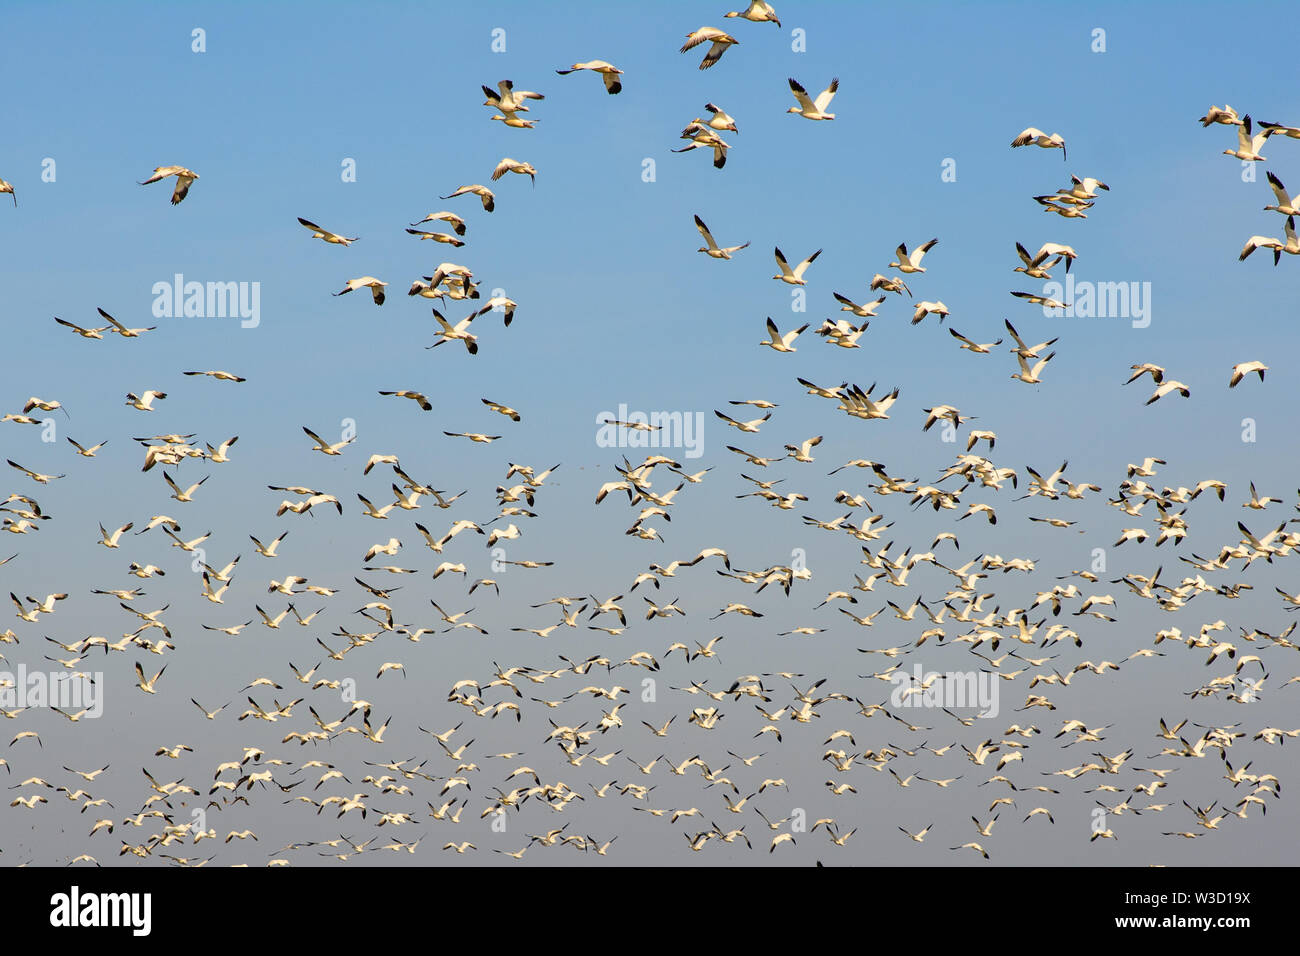 Massive flock of migrating snow geese flying. - Stock Image